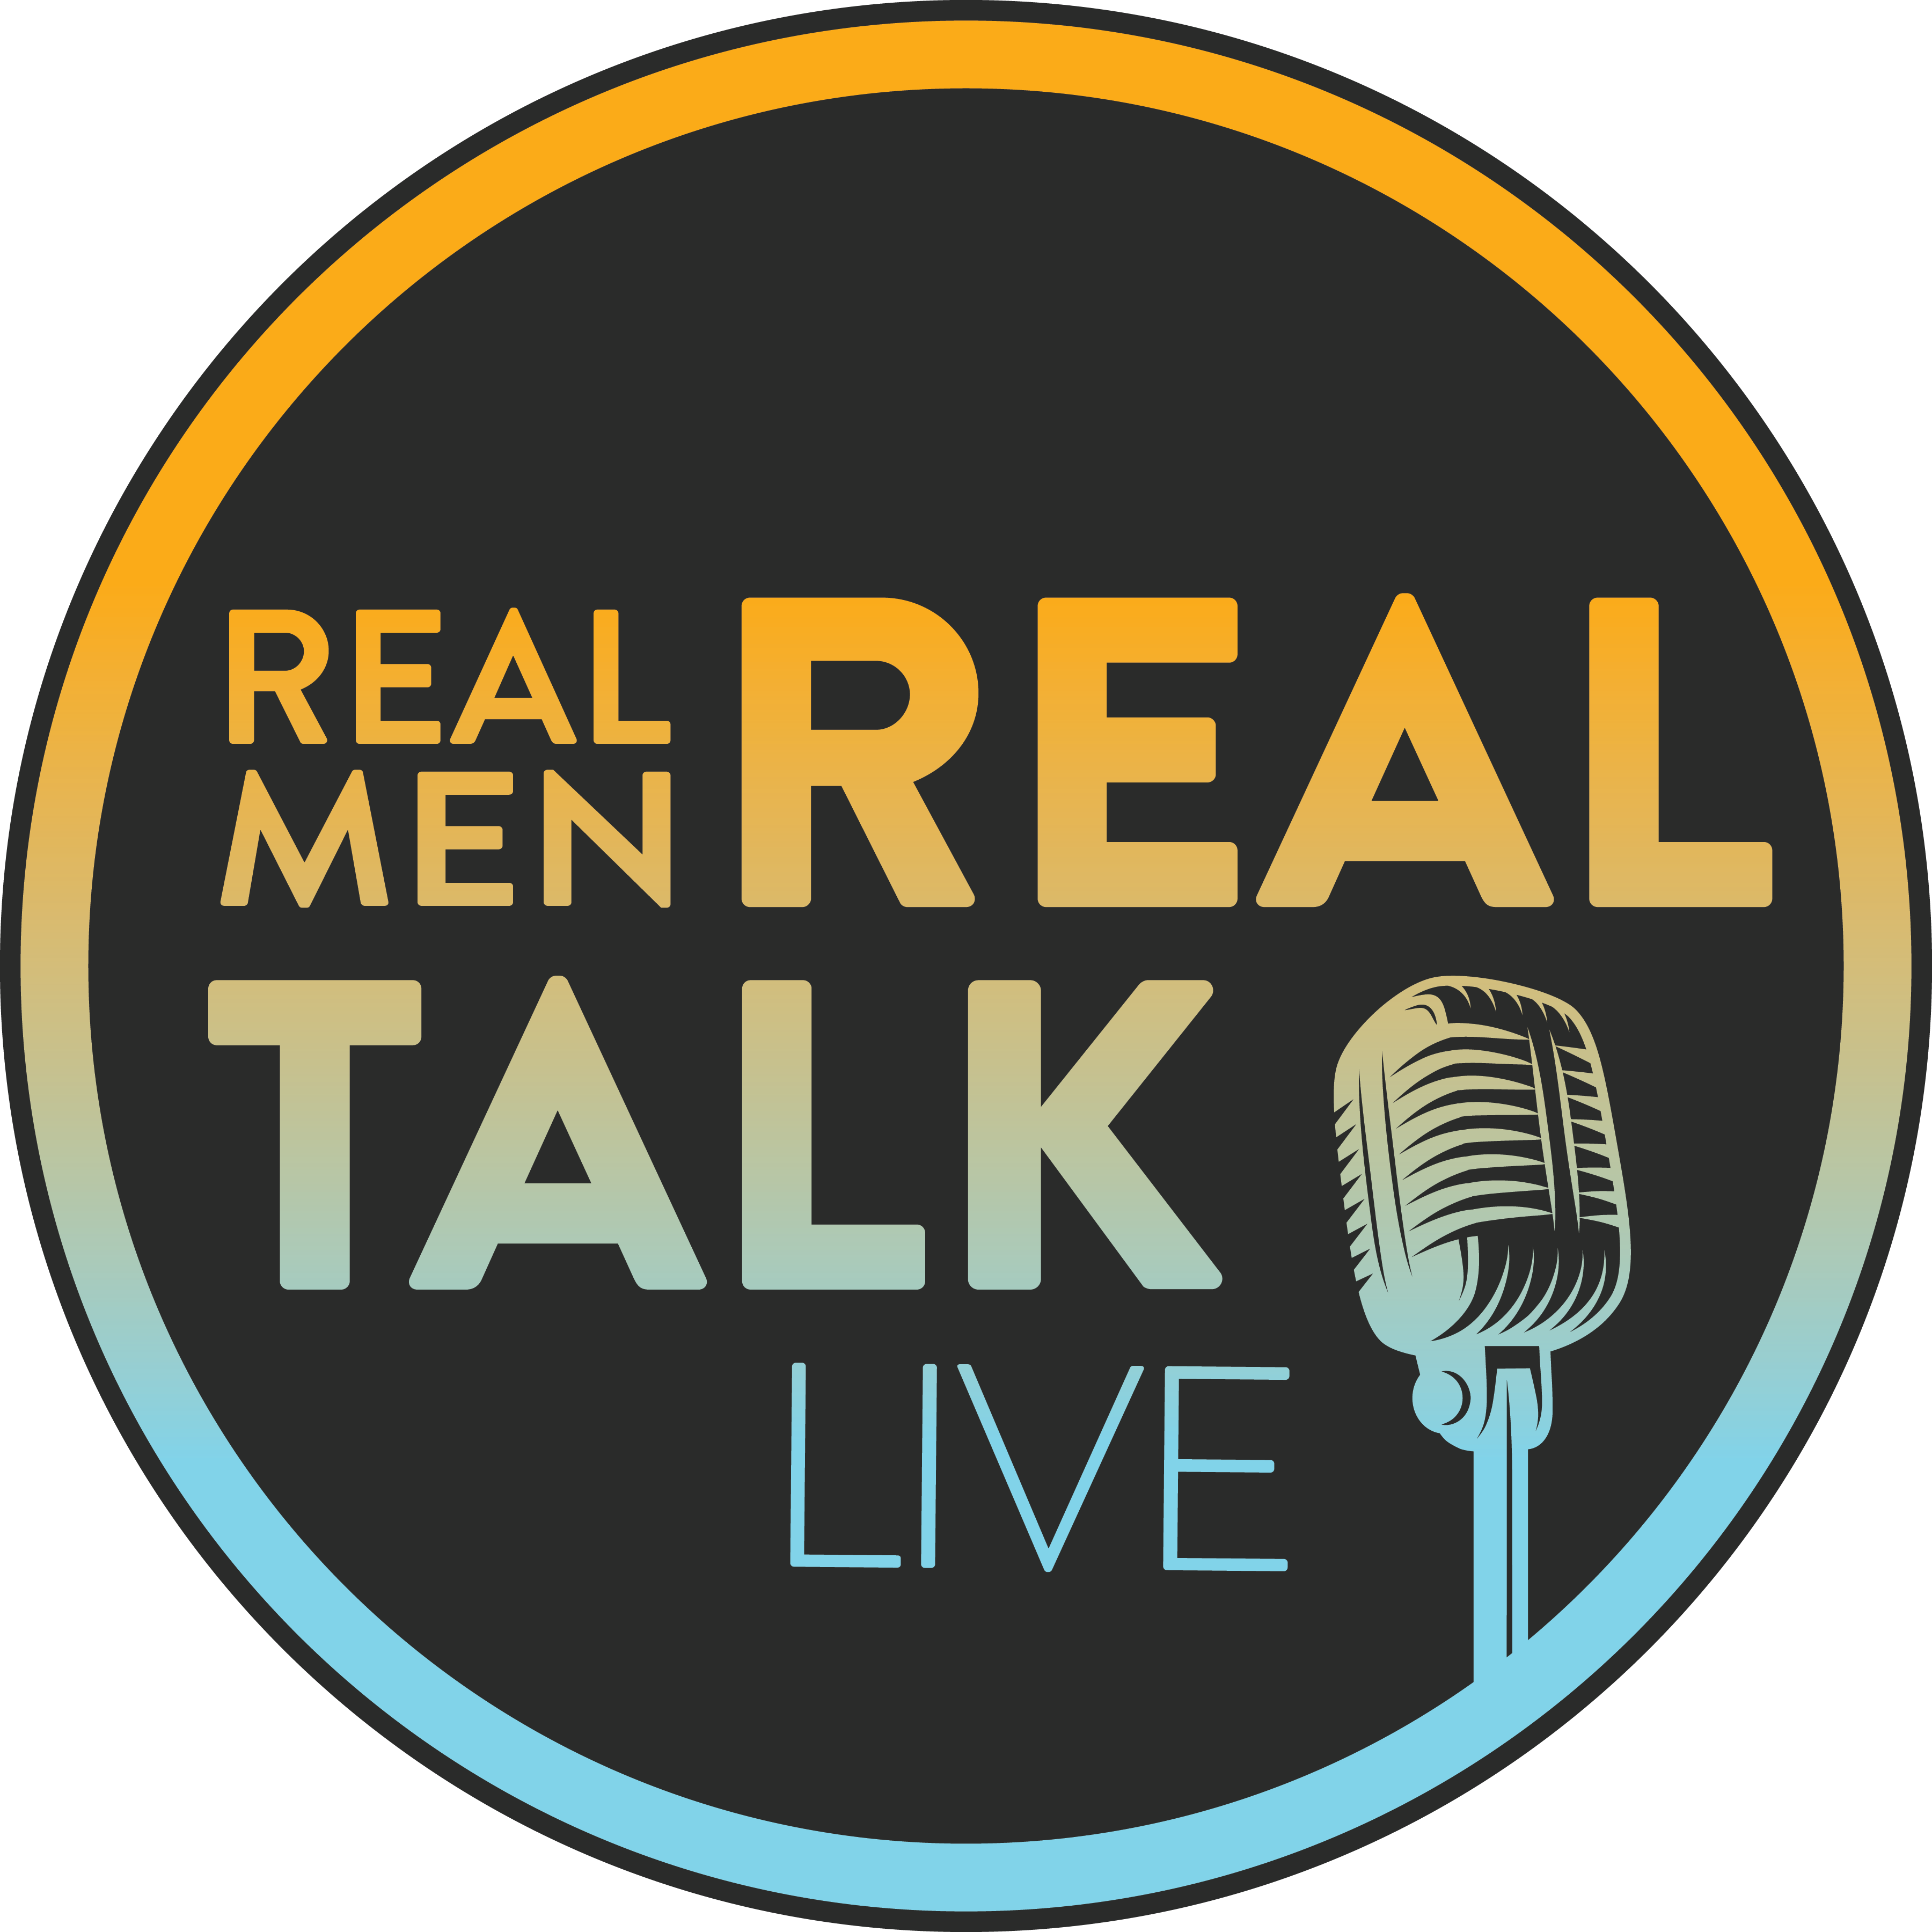 Jay Rothman, Author, Transformational Coach & Executive Producer has teamed up with Award-winning director Charles Mattocks to produce Real Men Real Talk Live; a groundbreaking new television concept